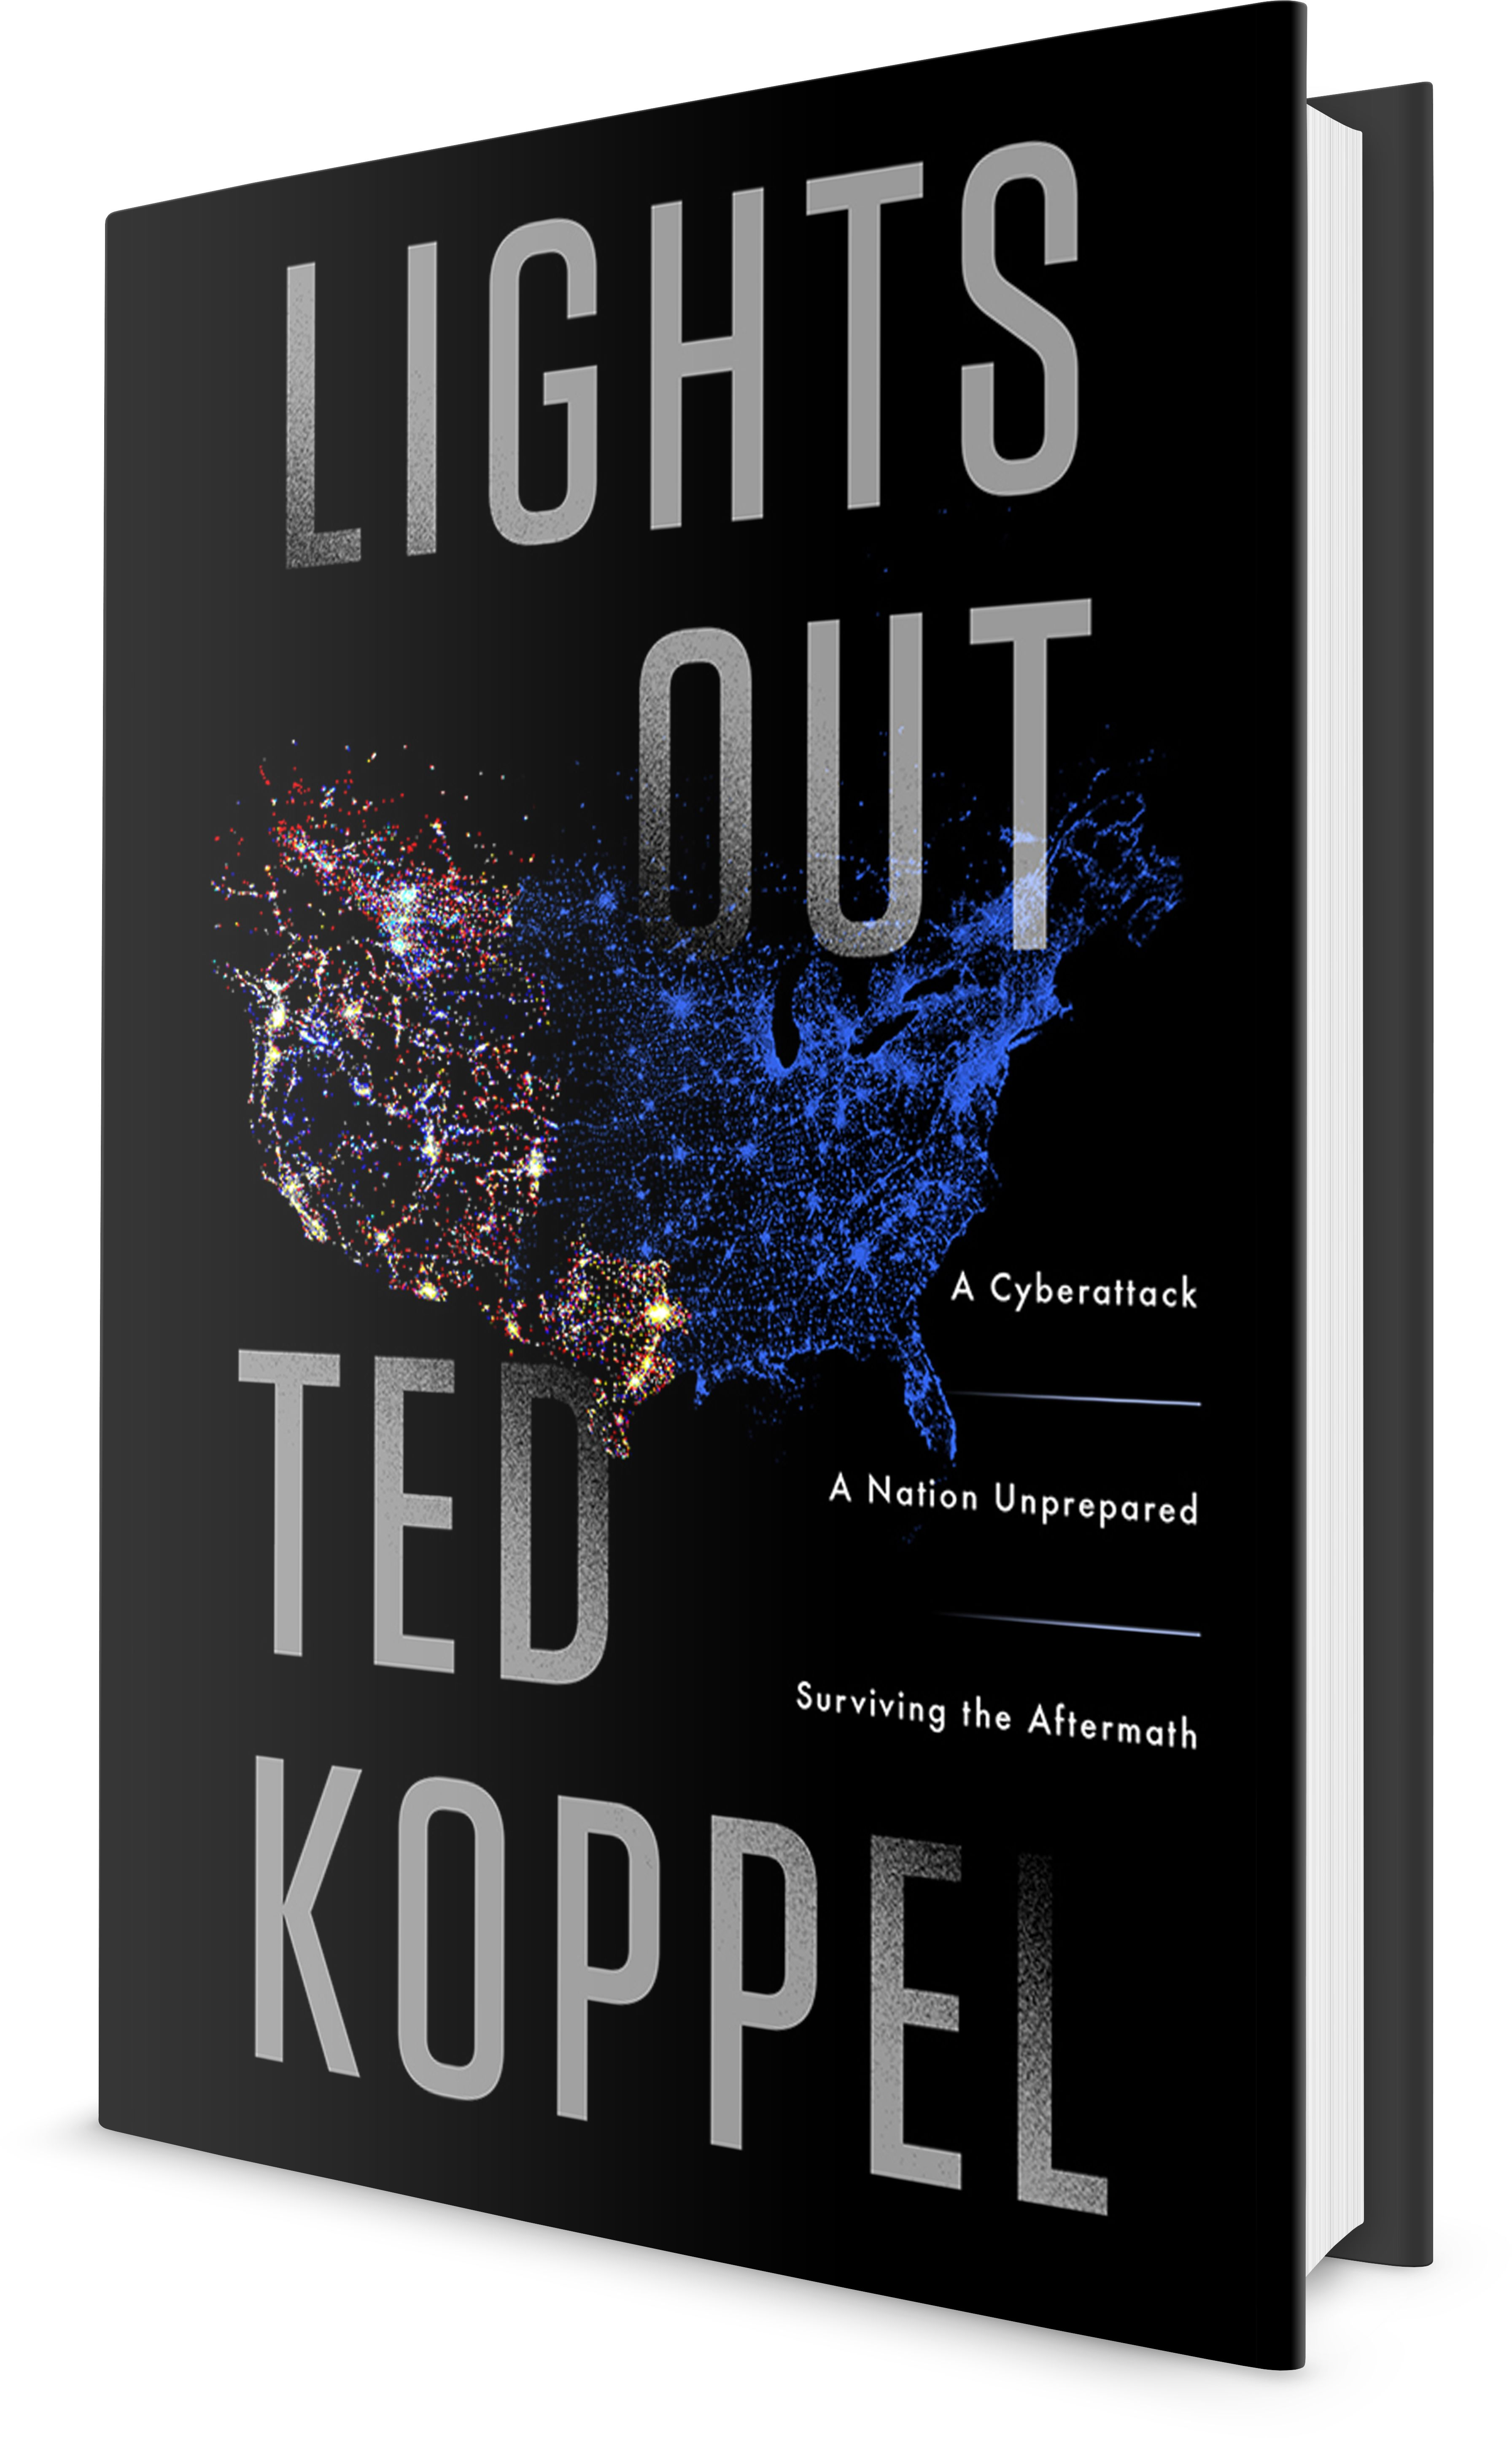 Lights Out A Cyberattack A Nation Unprepared Surviving The Aftermath Ted Koppel Http Www Amazon Com Dp 055341996x Http Survival Nonfiction Ted